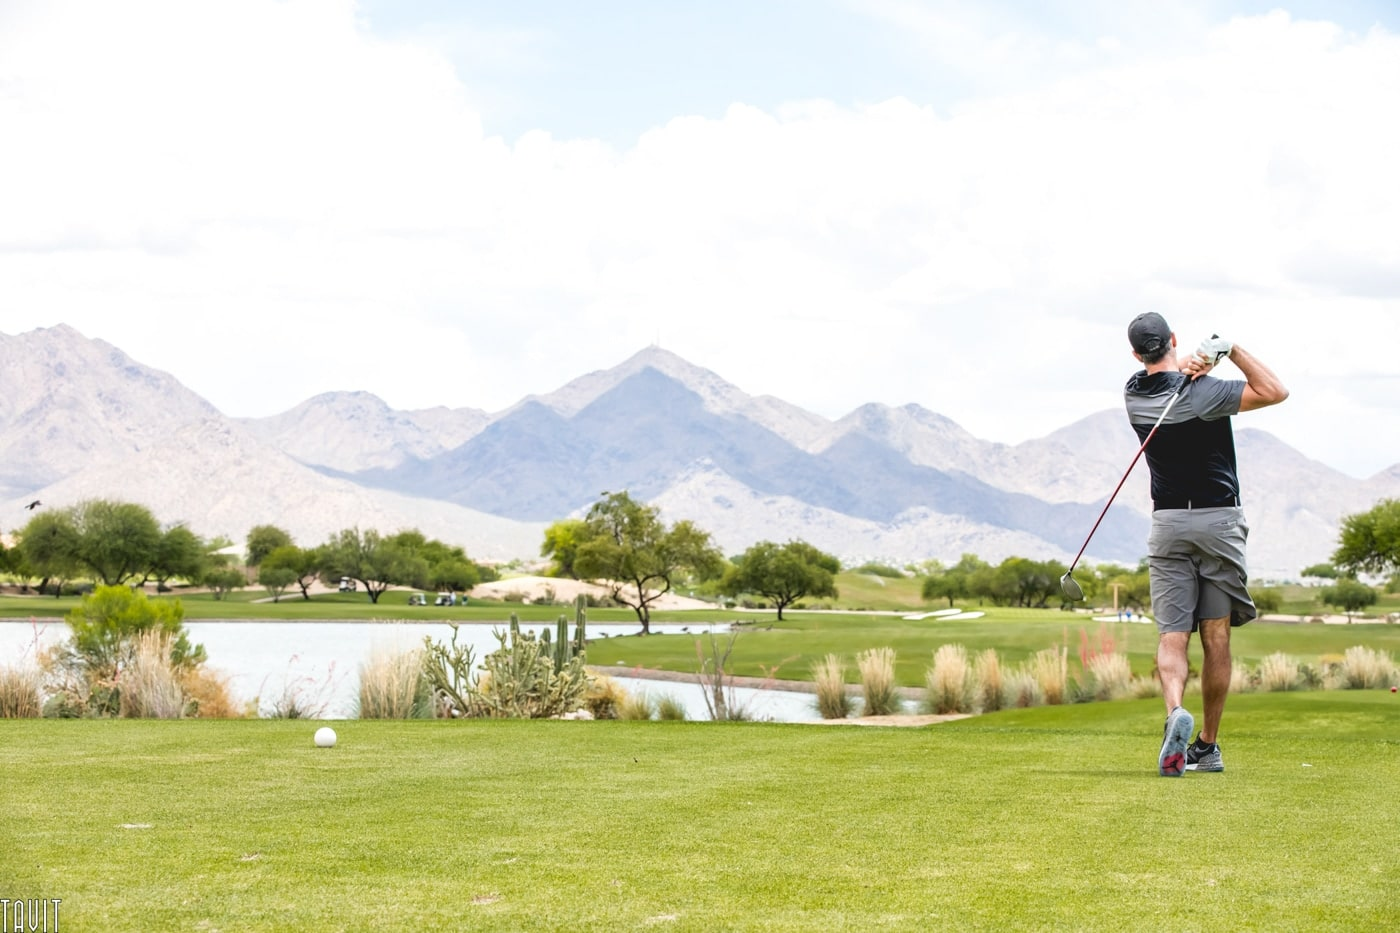 Corporate Event Photographer - Tavits Photography - Momentum 2019 - Desert Ridge Golf Course